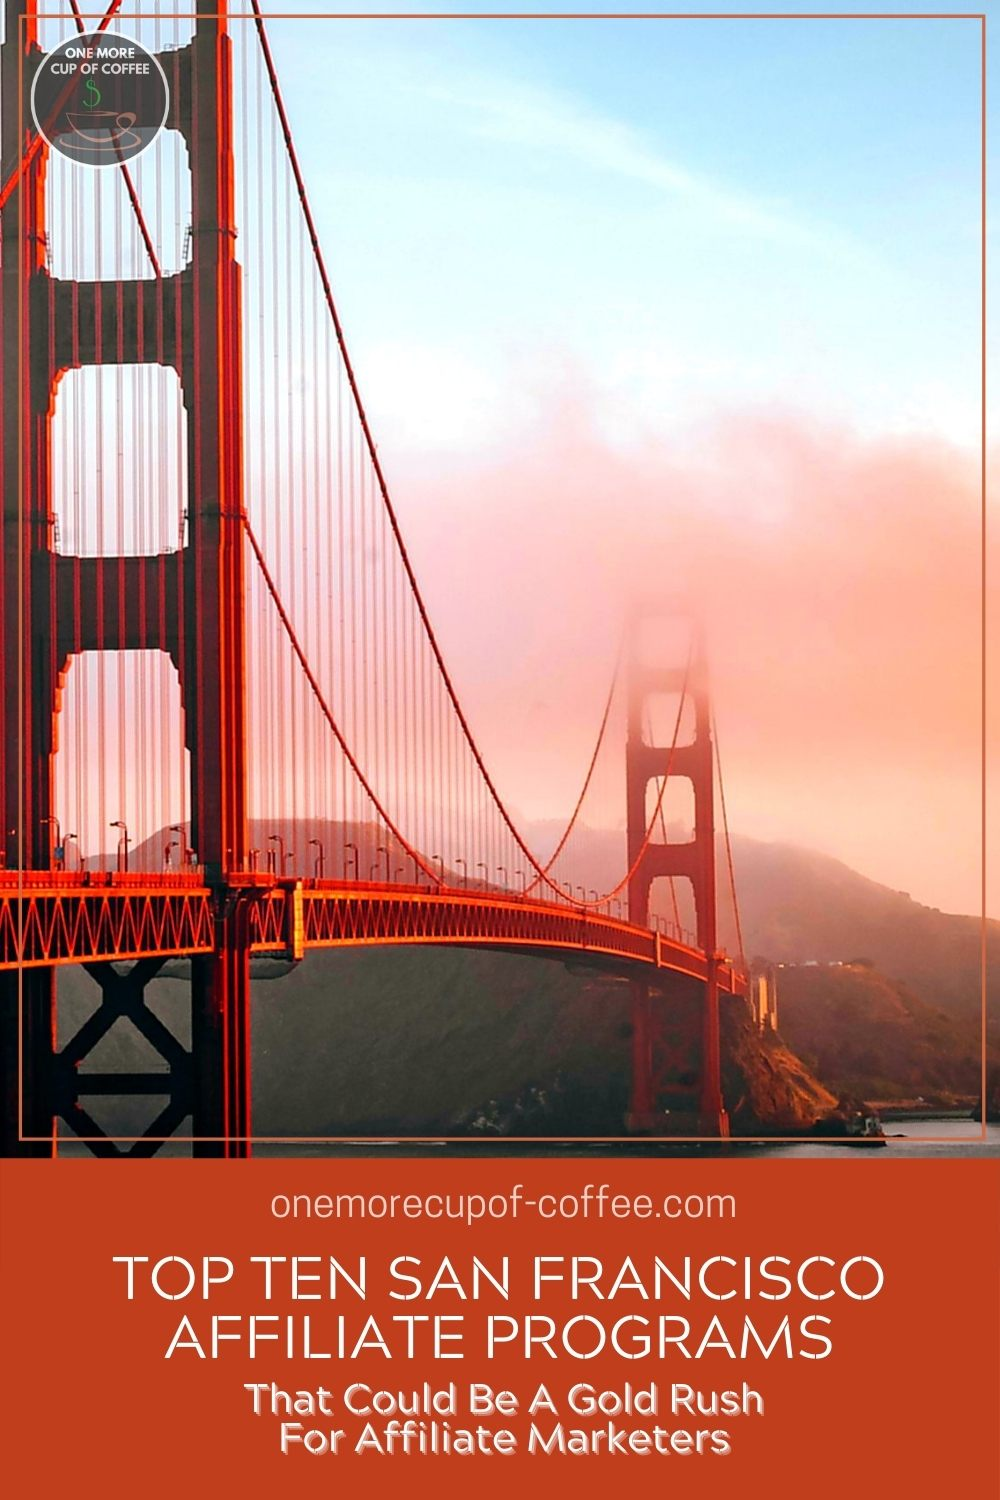 Image of the Golden Gate Bridge with text overlay